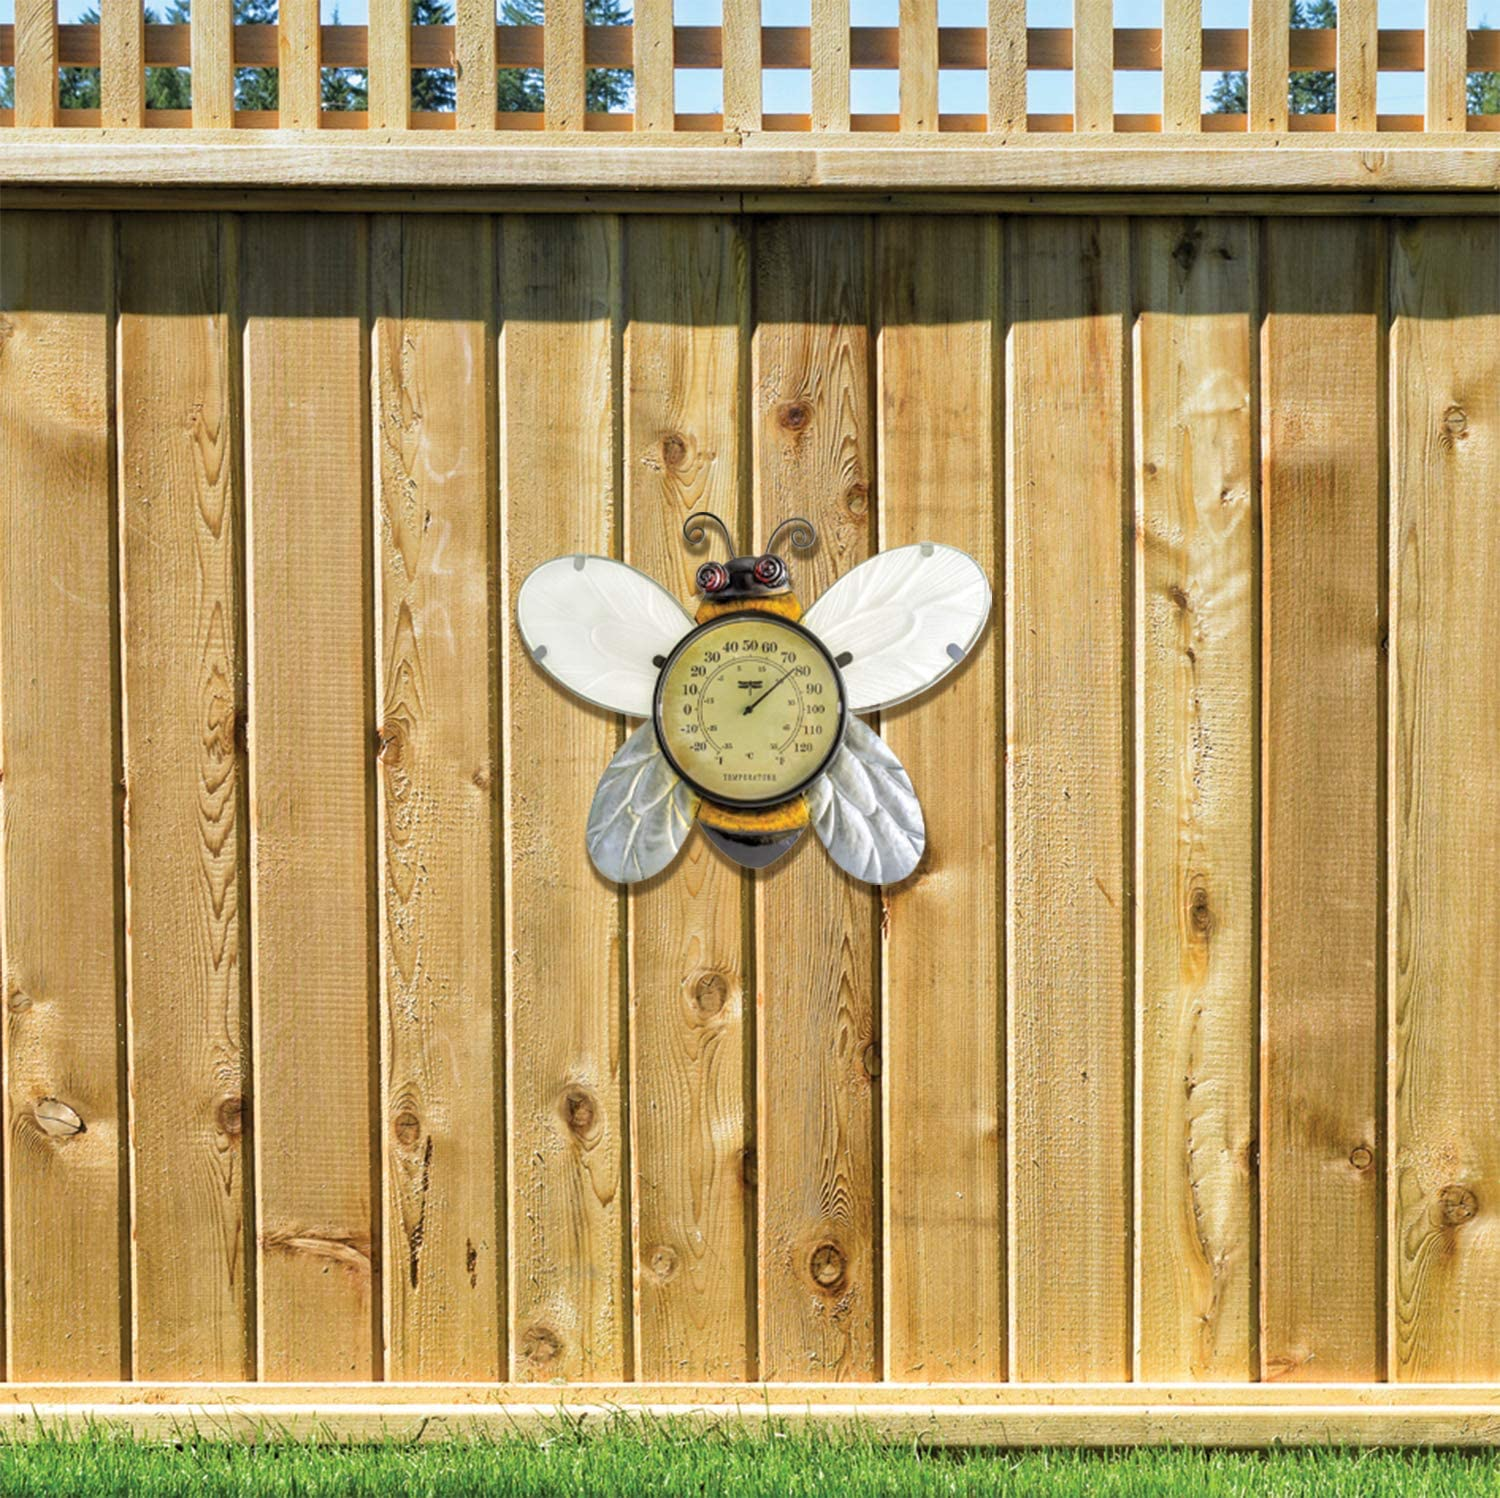 Poolmaster 54579 Bumble Bee Wall Décor and Thermometer for Home or Garden, Yellow